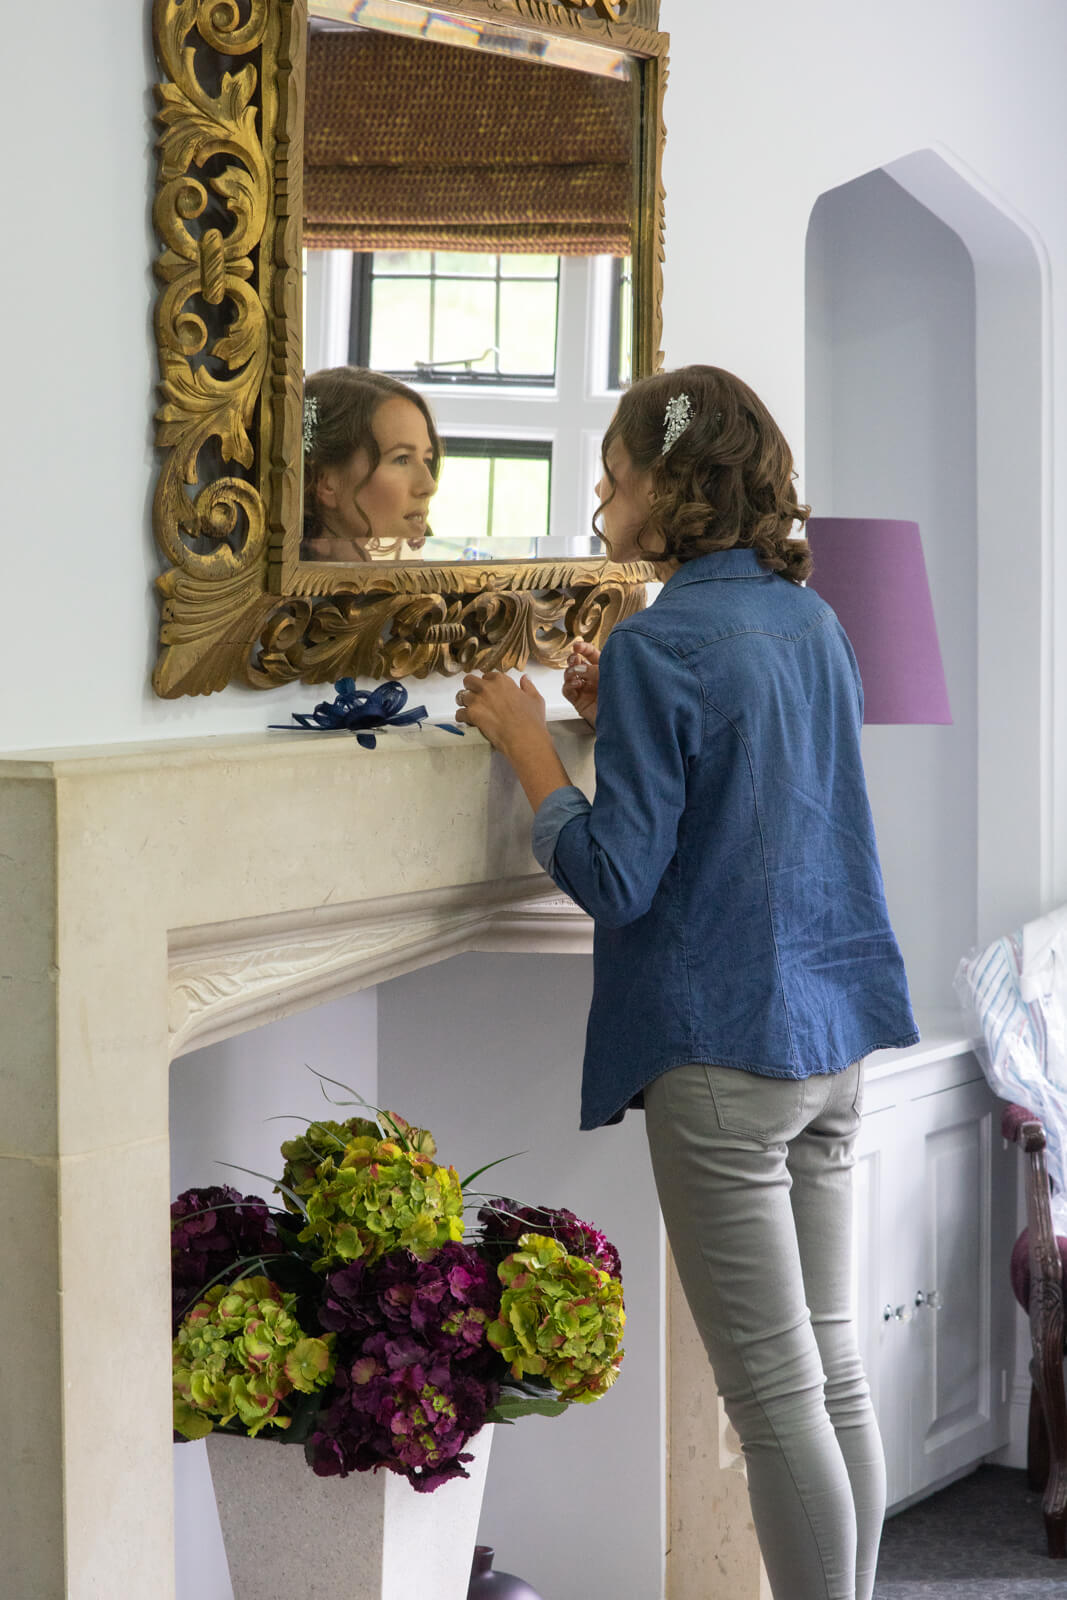 Bride to be doing her make up in a mirror over a mantlepiece